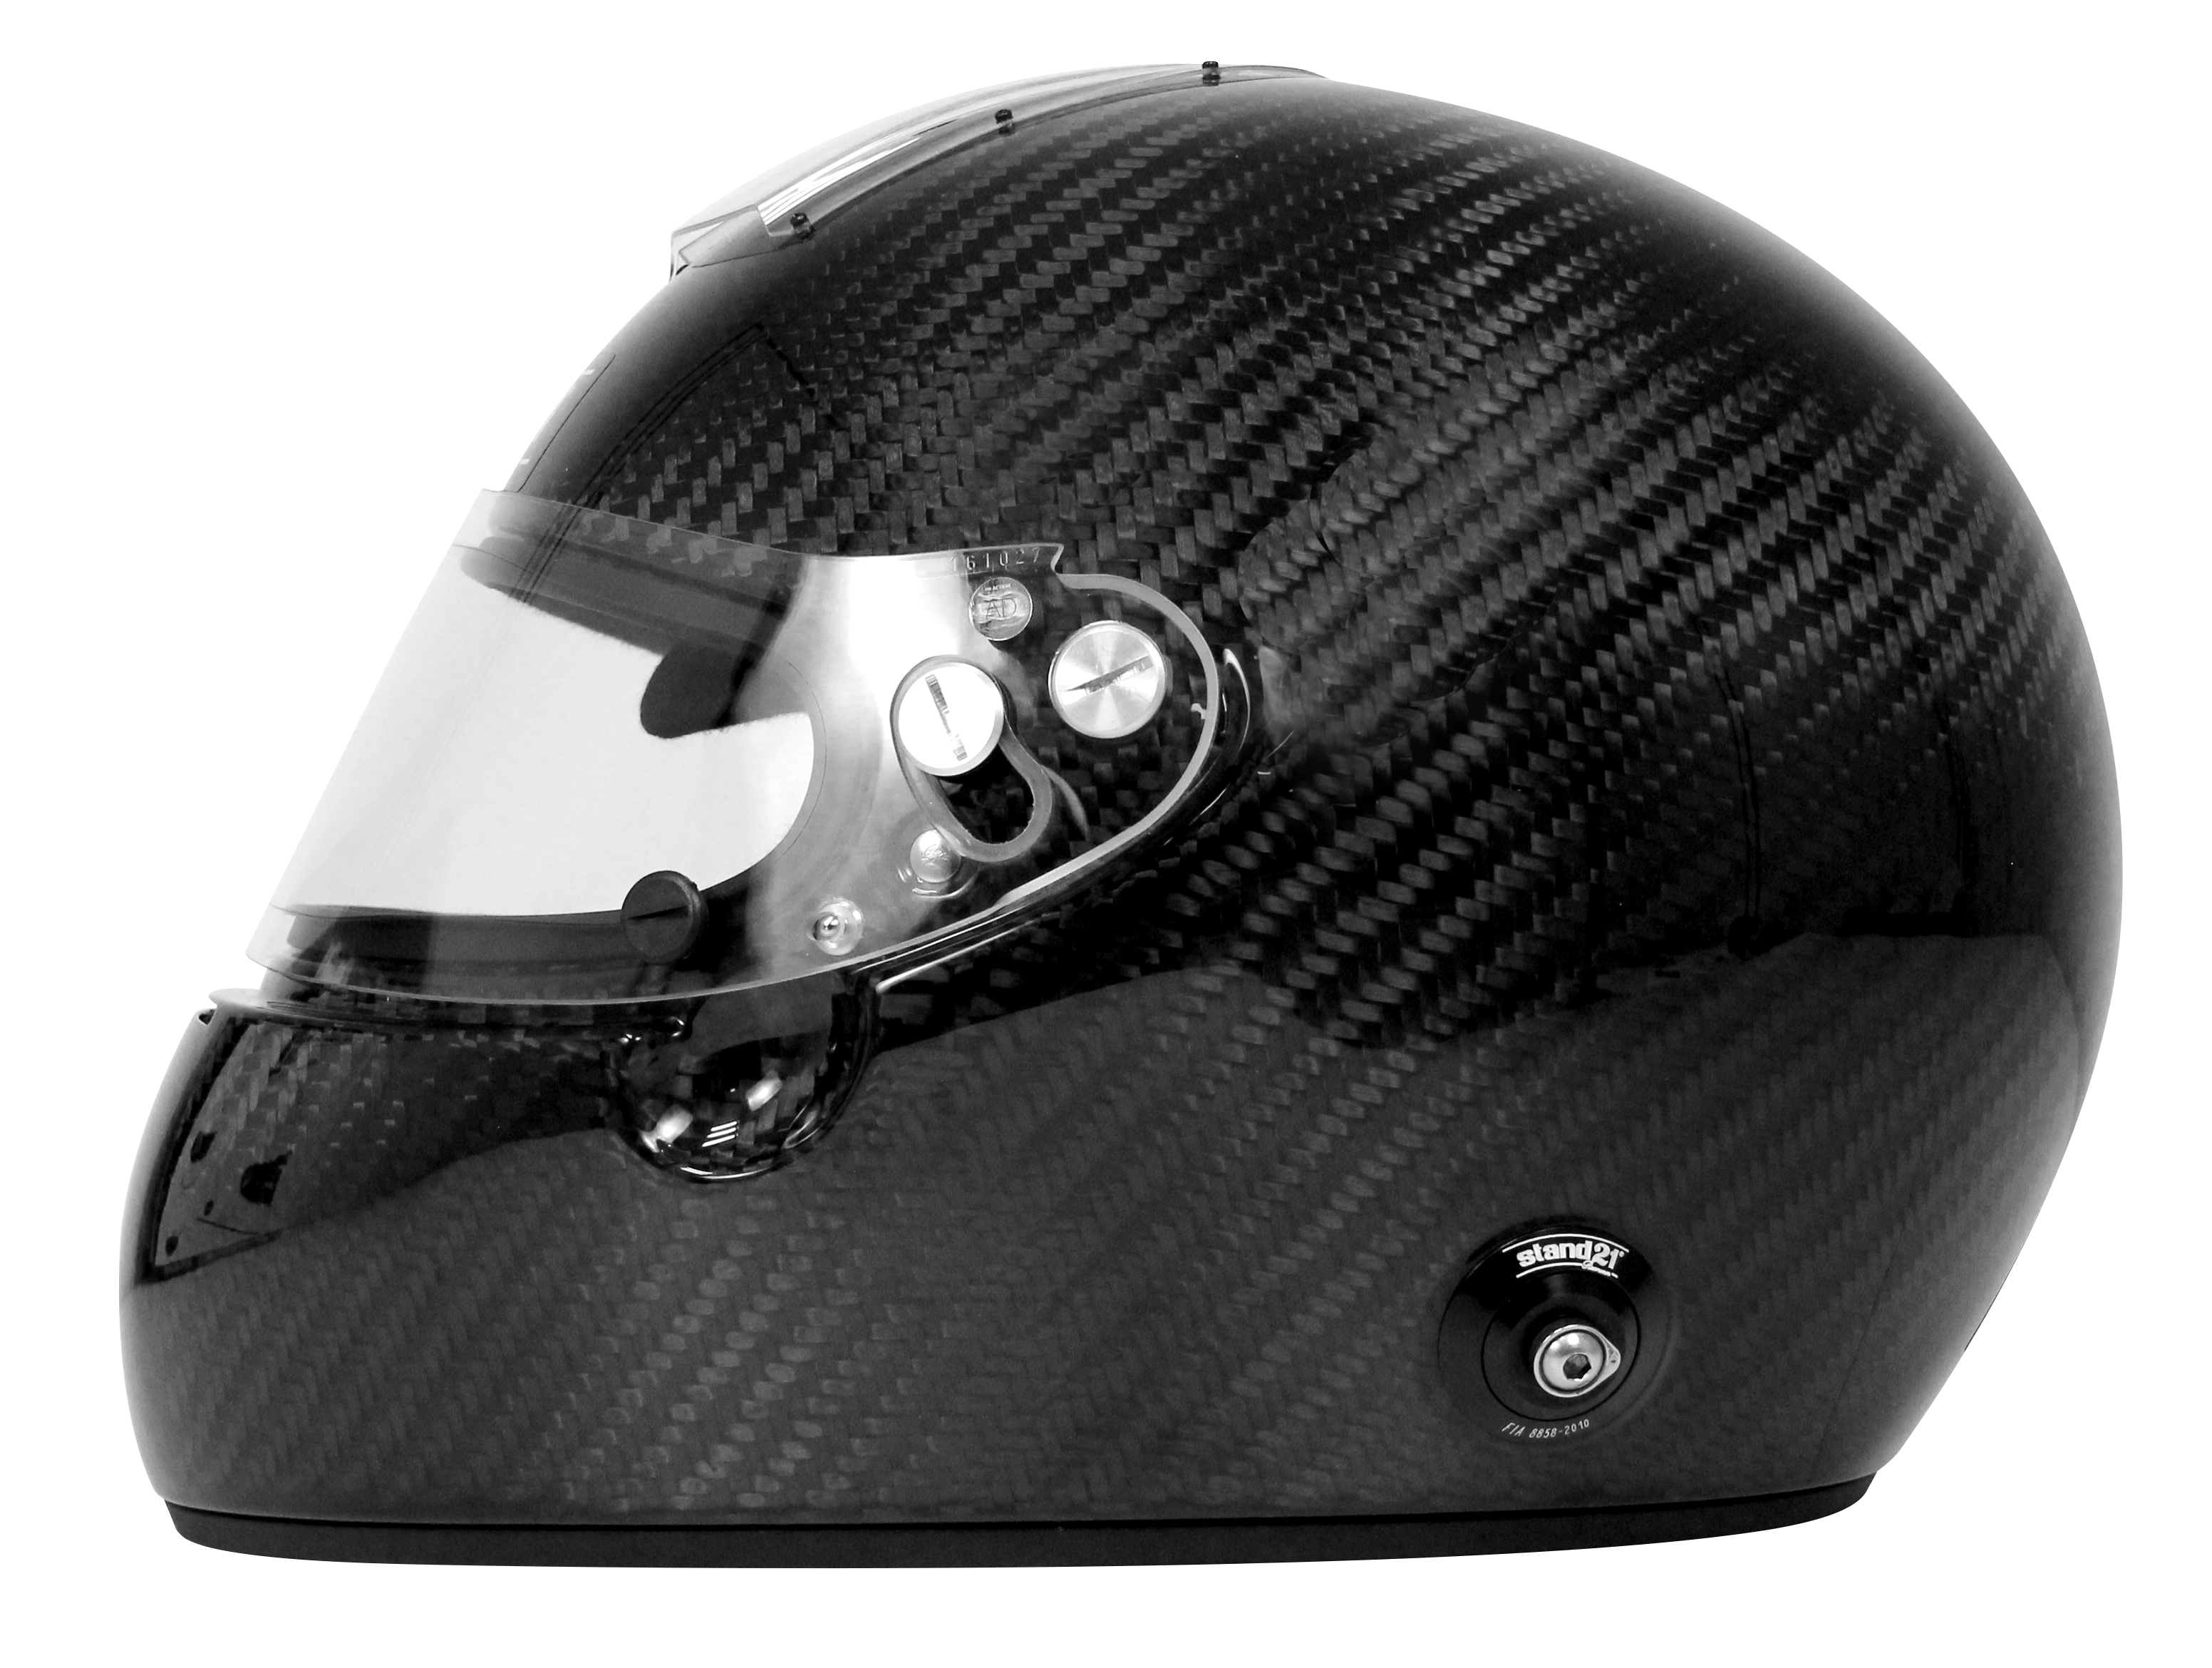 Stock IVOS-Double Duty helmet